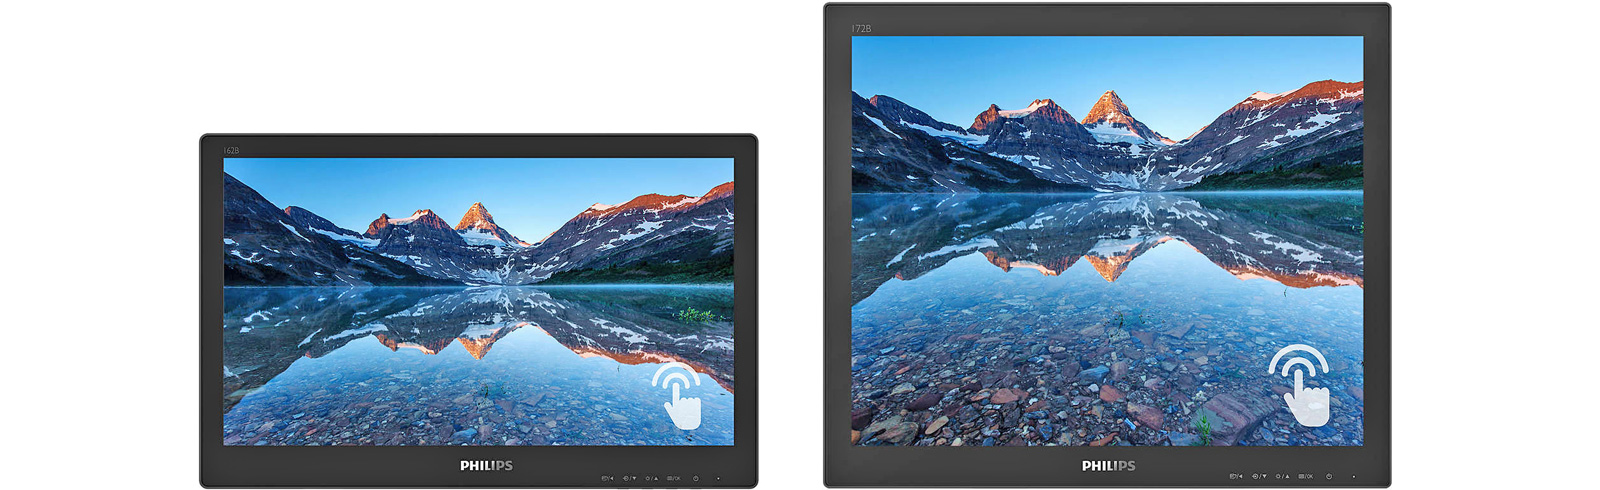 Philips has released the 2B9TN series of touch-display monitors